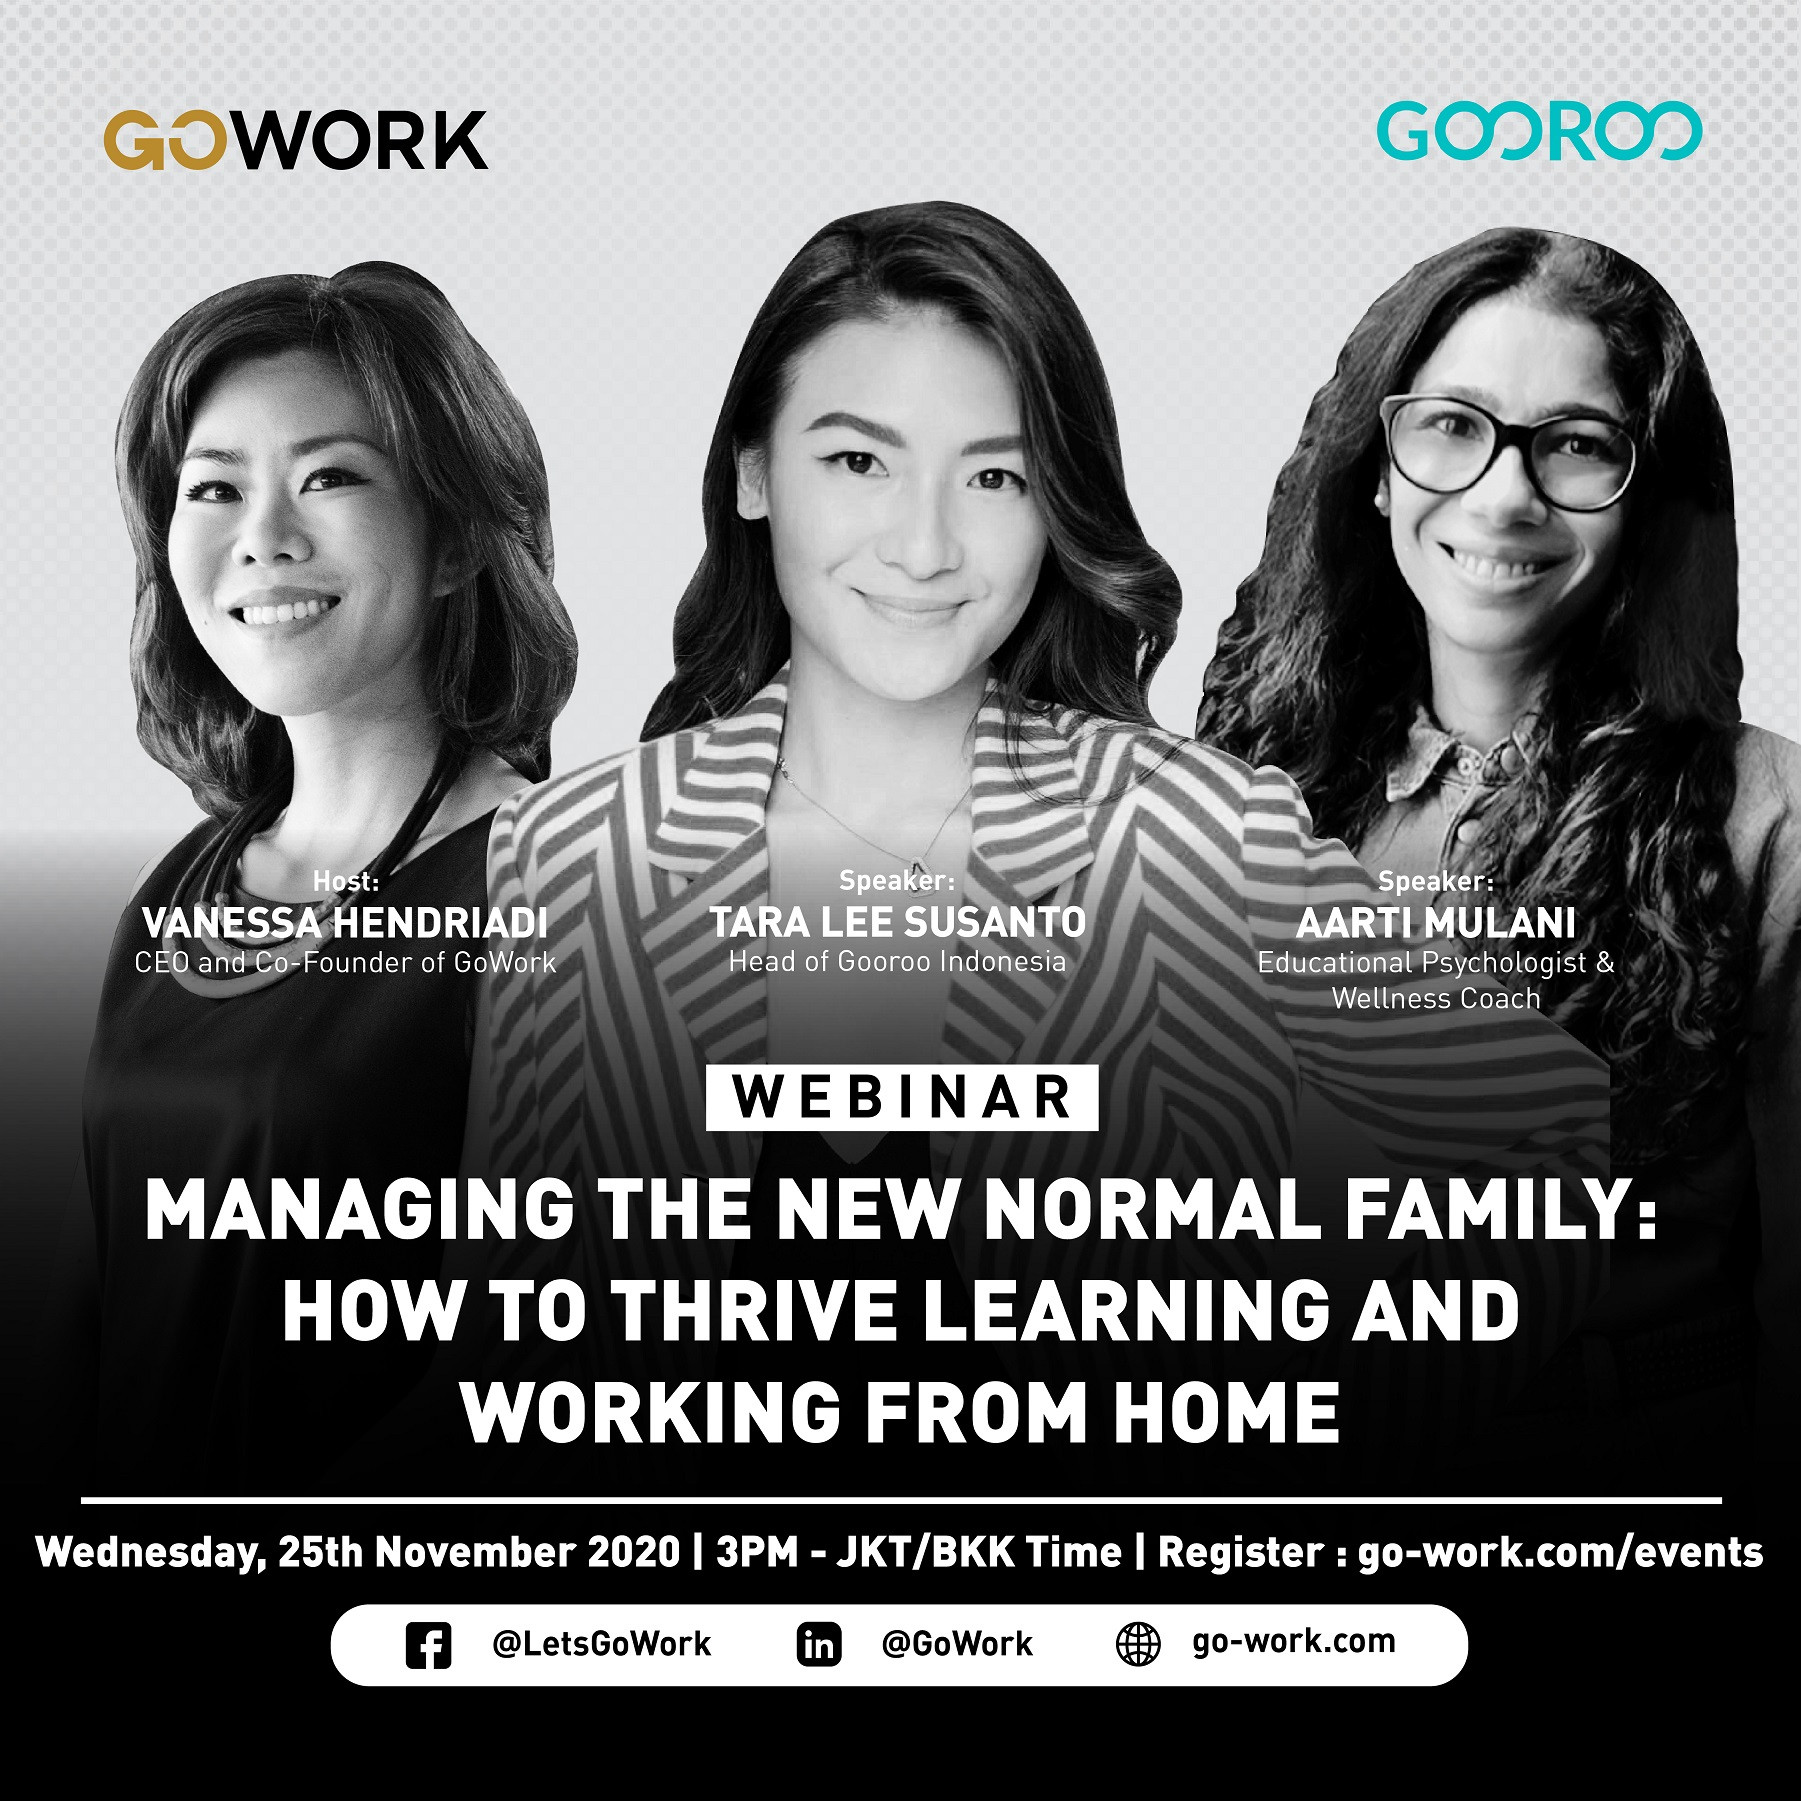 Managing The New Normal Family: How to Thrive Learning and Working From Home